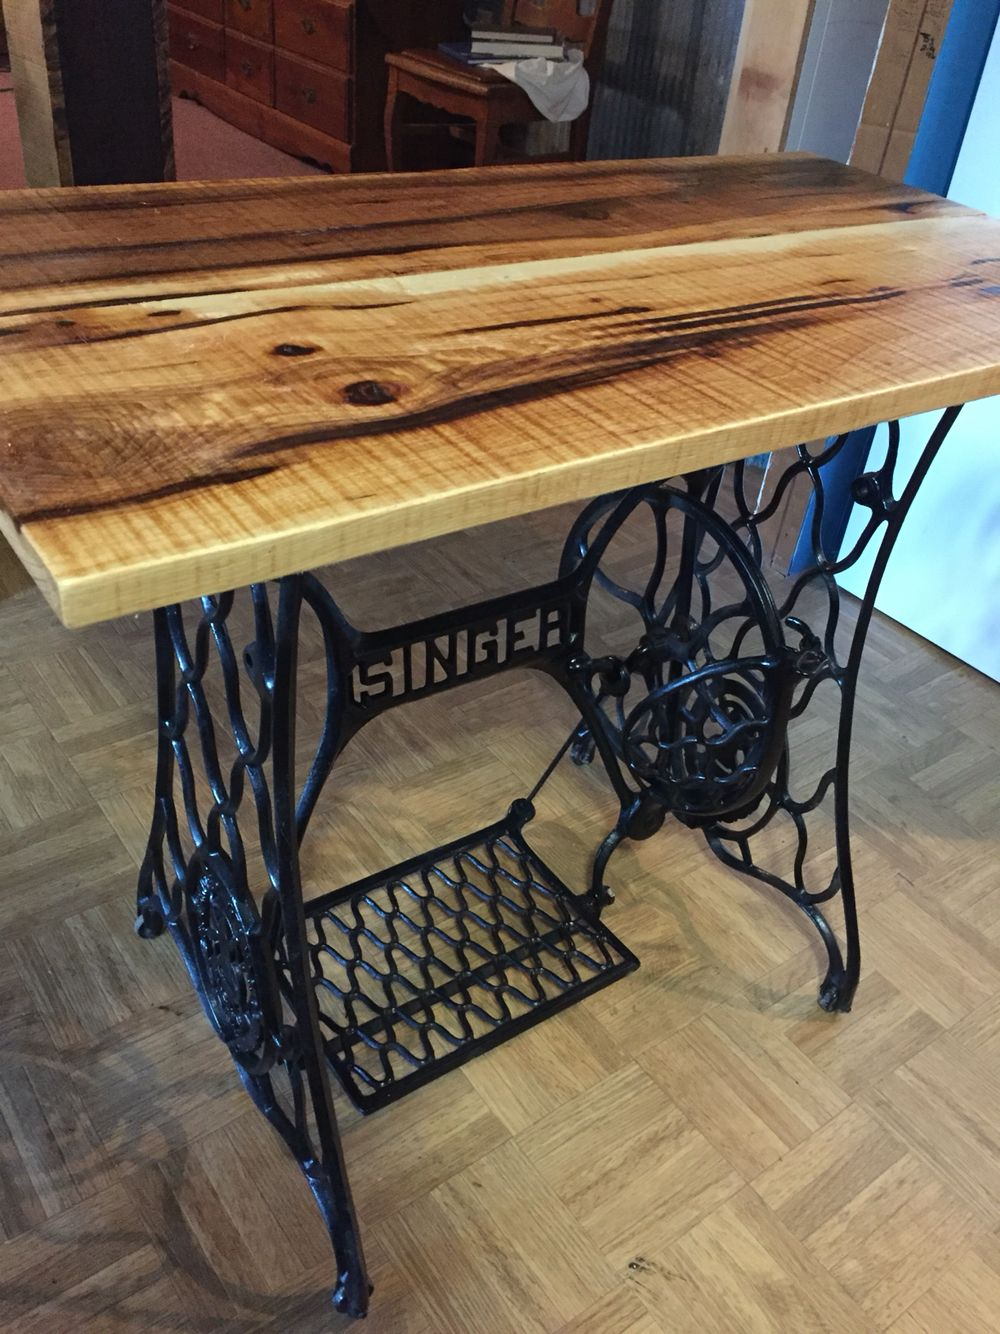 end table made from antique singer sewing machine with rough sawed lumber used as top. Black Bedroom Furniture Sets. Home Design Ideas